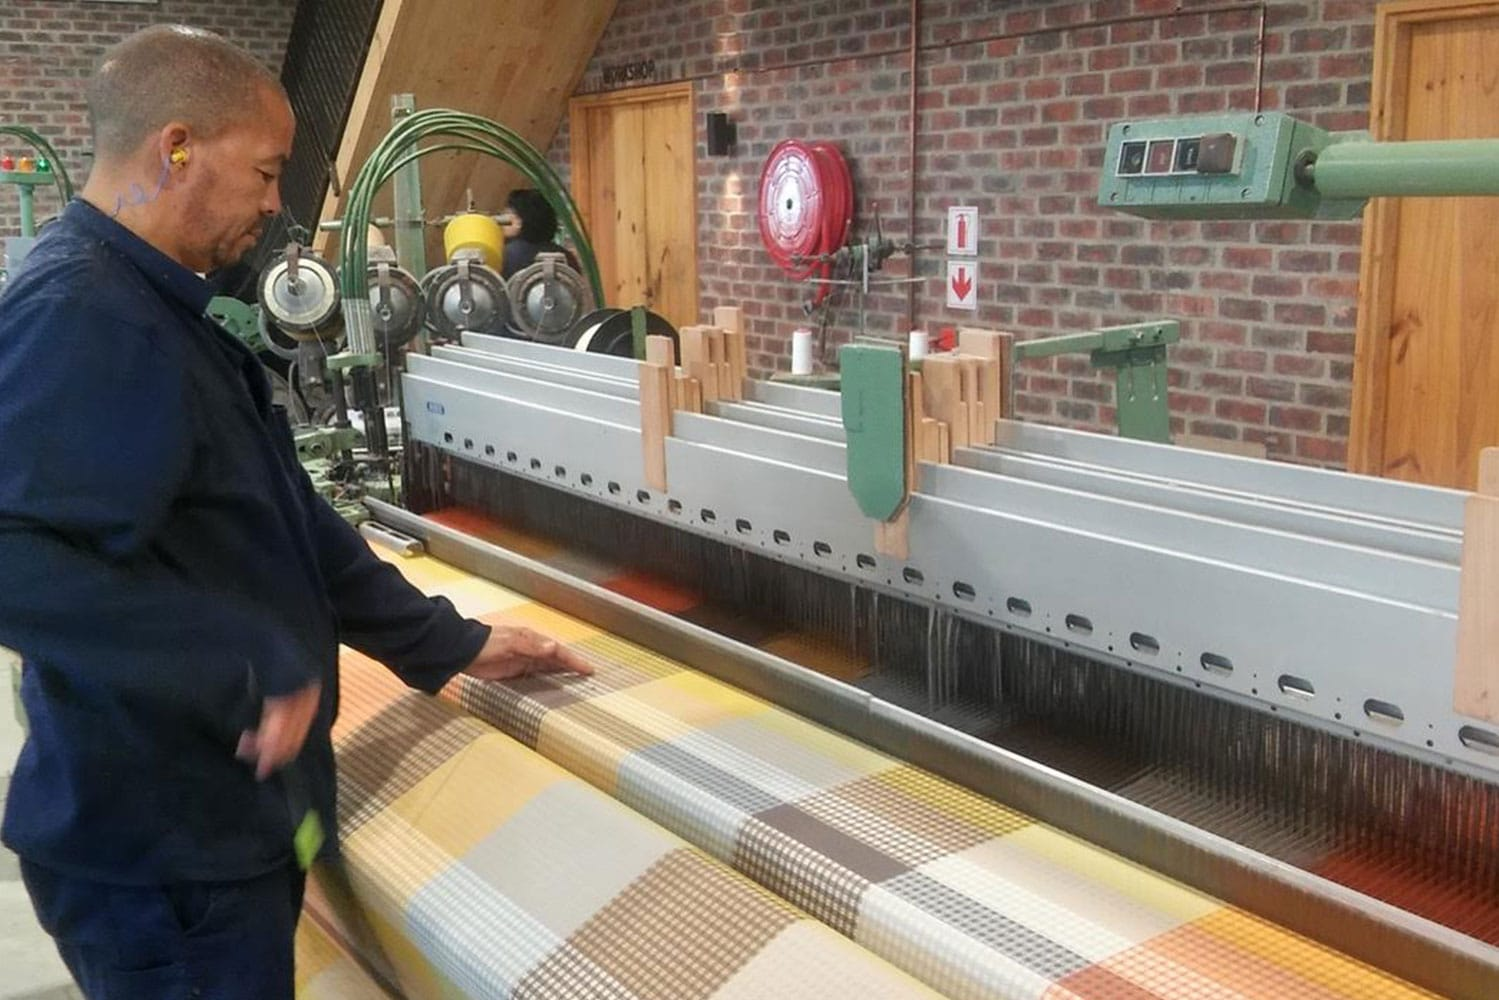 The Vrou-Vrou being woven on the wide width Dornier loom at the Mungo mill